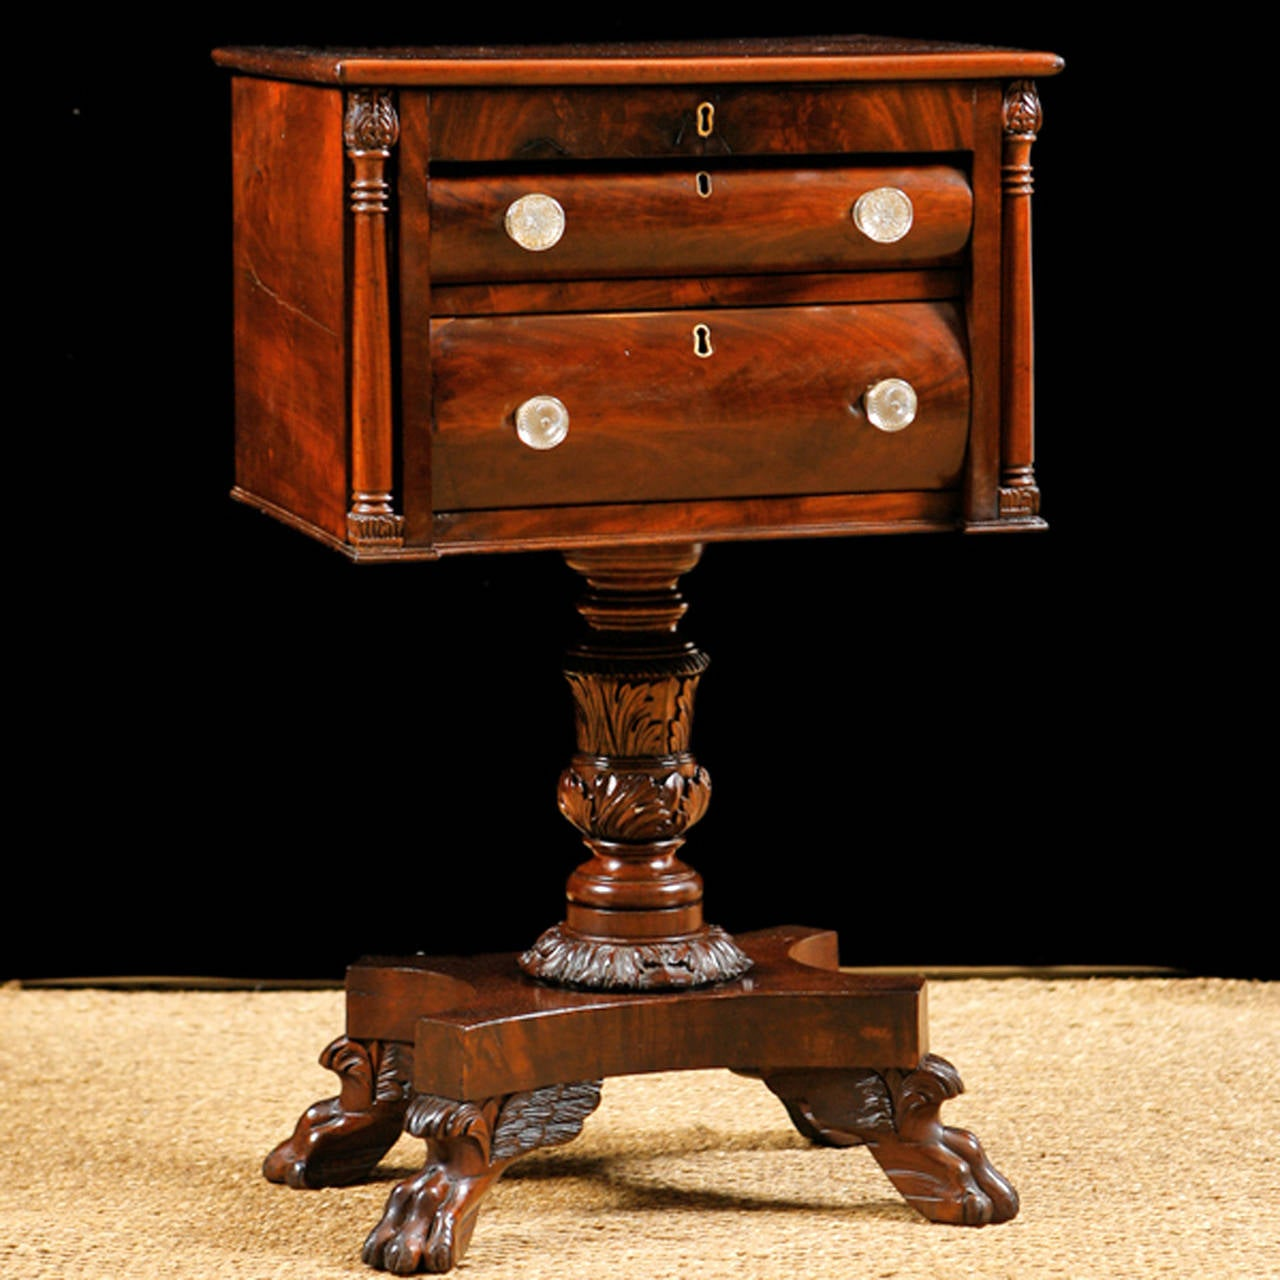 A fine Empire work table in mahogany on foliate-carved, baluster-turned pedestal resting on quatre-form base and terminating with winged carved lions' paw feet. Top opens to baize-lined writing surface over two drawers with beveled glass pulls.